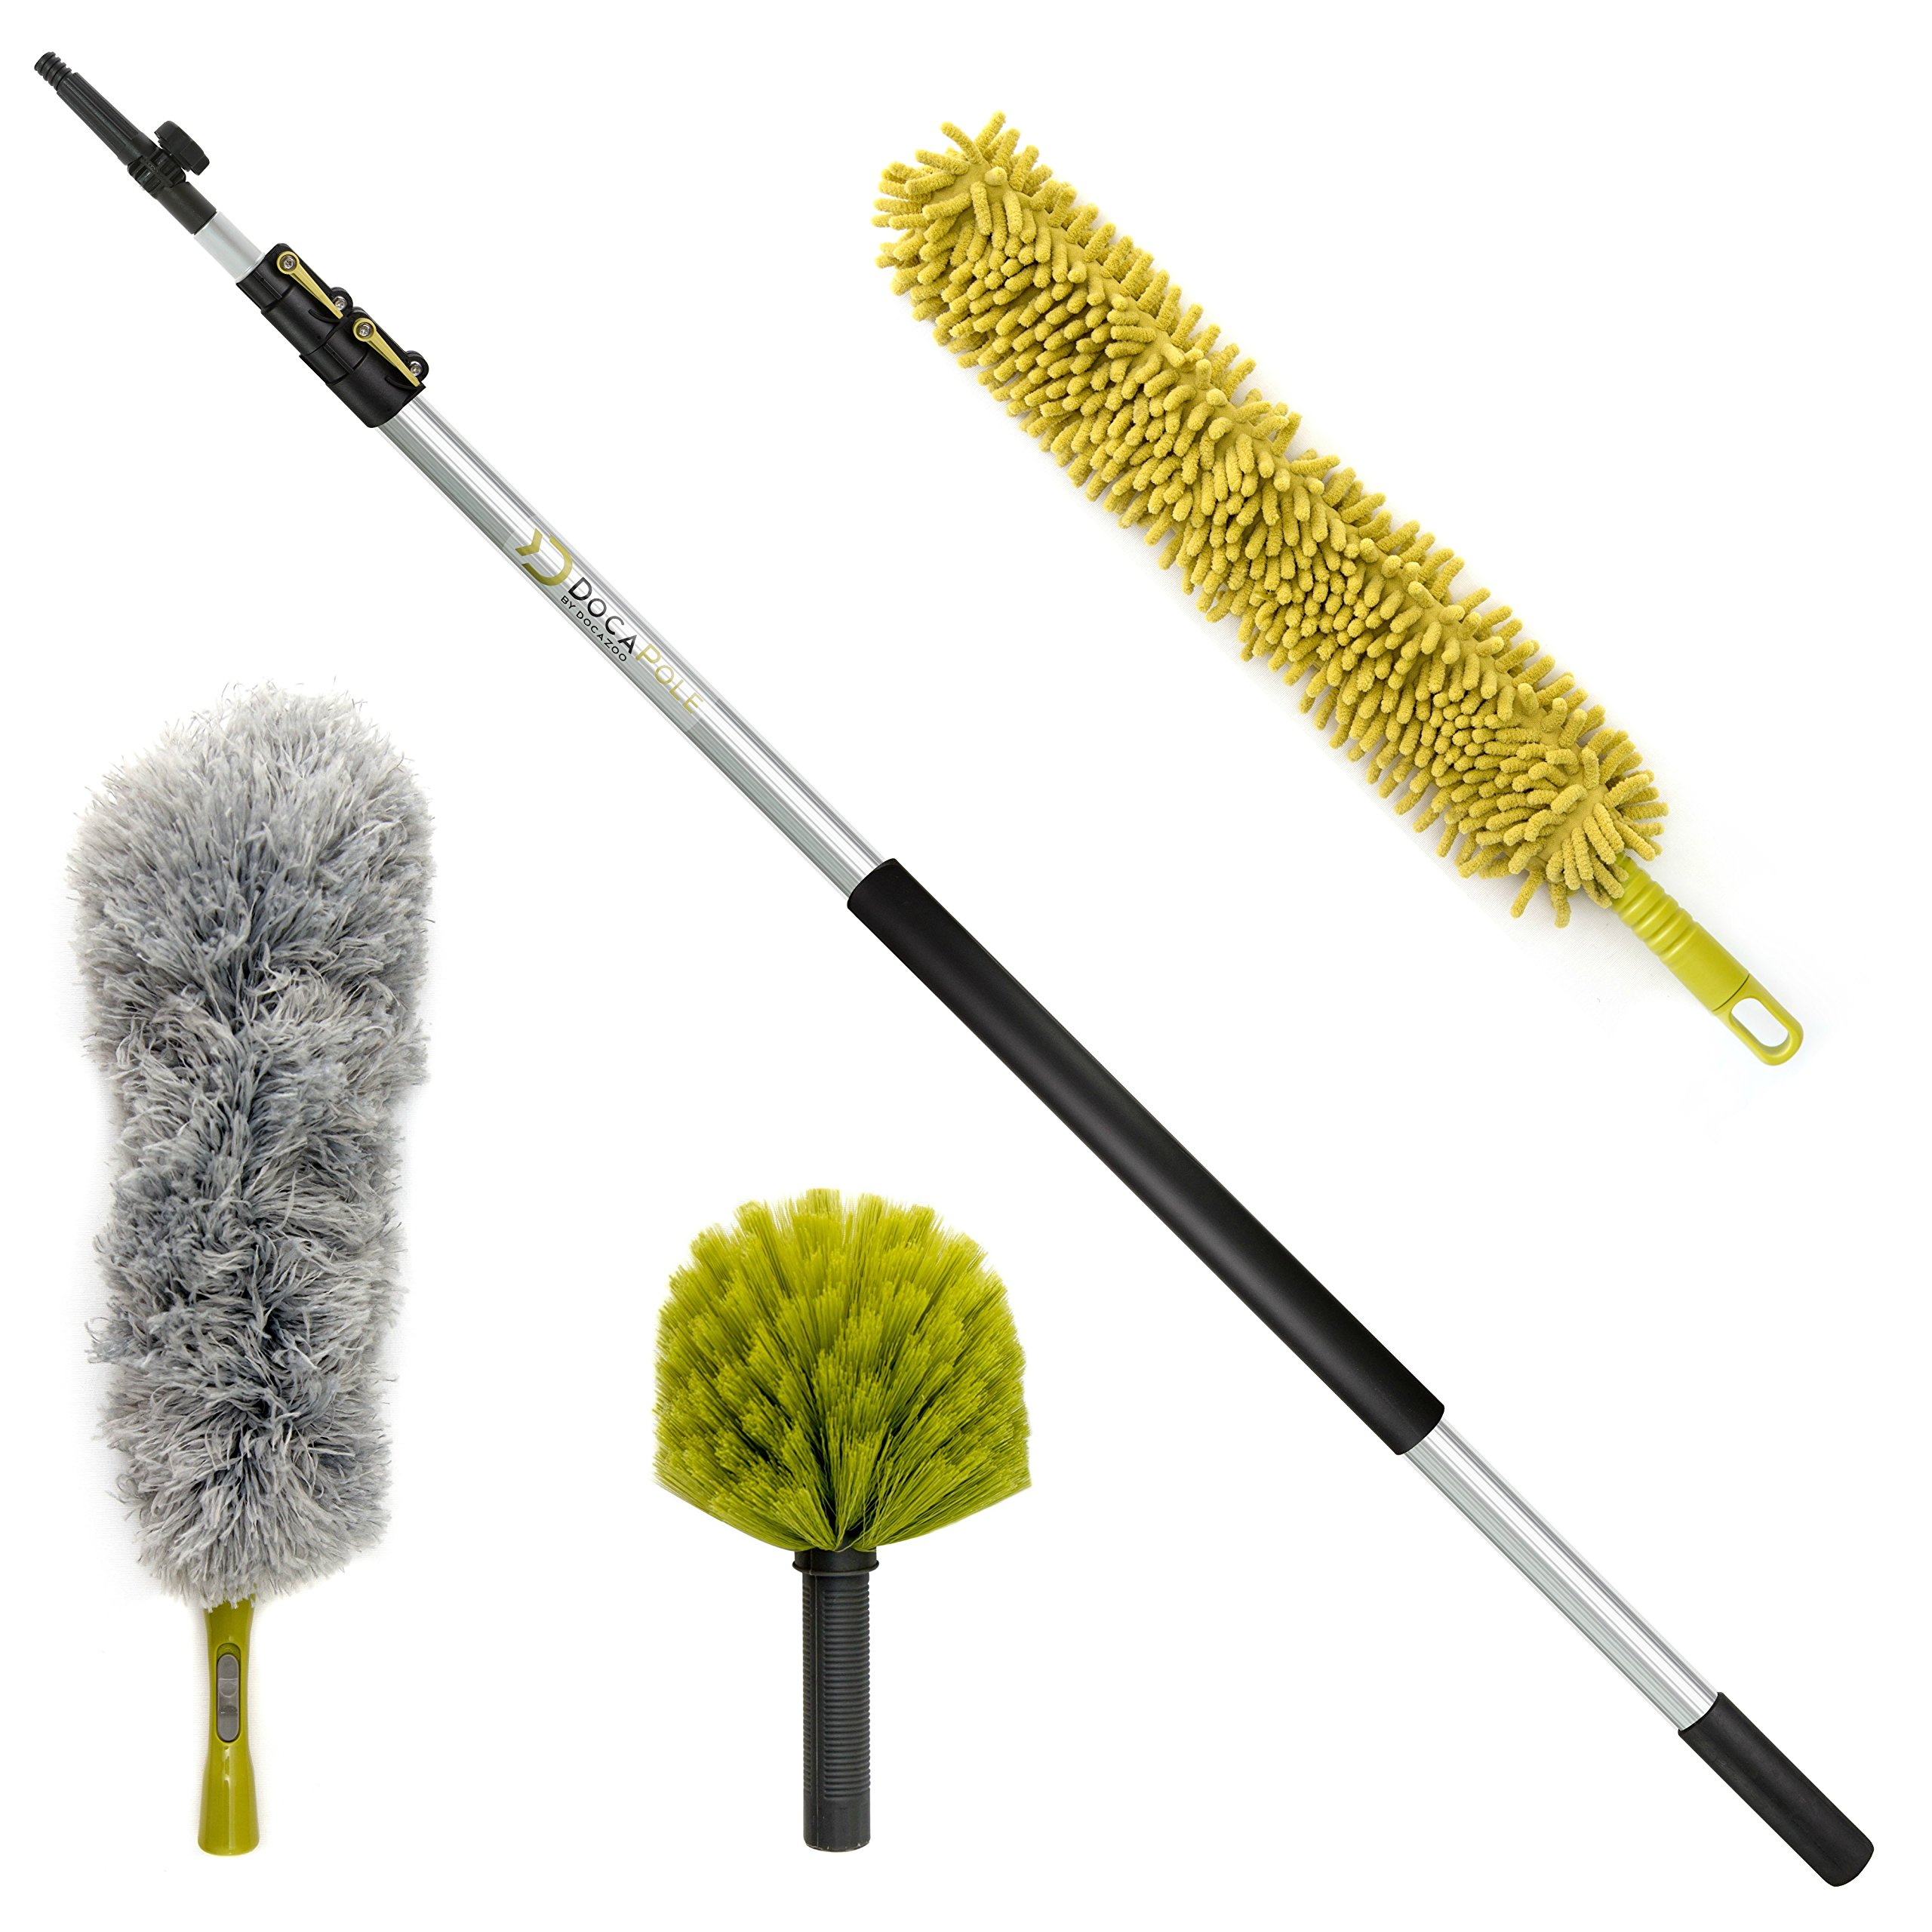 DocaPole 20 Foot High Reach Dusting Kit with 5-12 Foot Extension Pole // Cleaning Kit Includes 3 Dusting Attachments // Cobweb Duster // Microfiber Duster // Ceiling Fan Duster by DOCAZOO